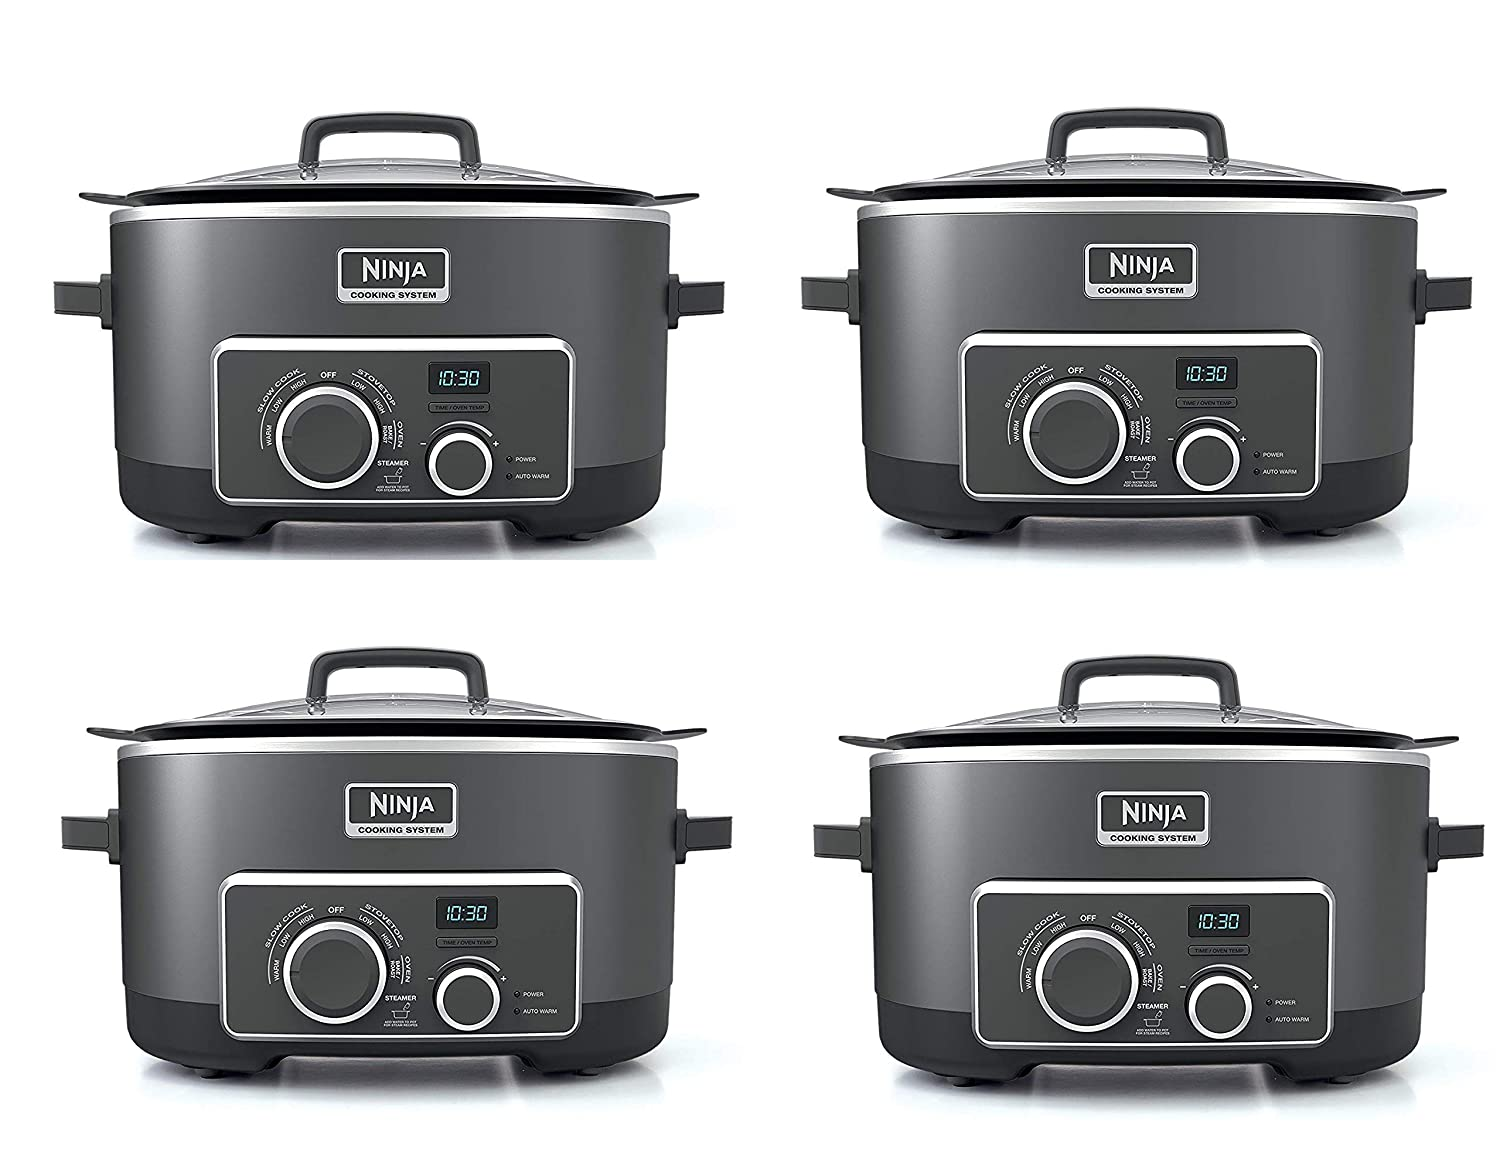 Ninja Multi-Cooker with 4-in-1 Stove Top, Oven, Steam and Slow Cooker Options, 6-Quart Nonstick Pot, and Steaming/Roasting Rack (MC950Z), Black (Fivе ...